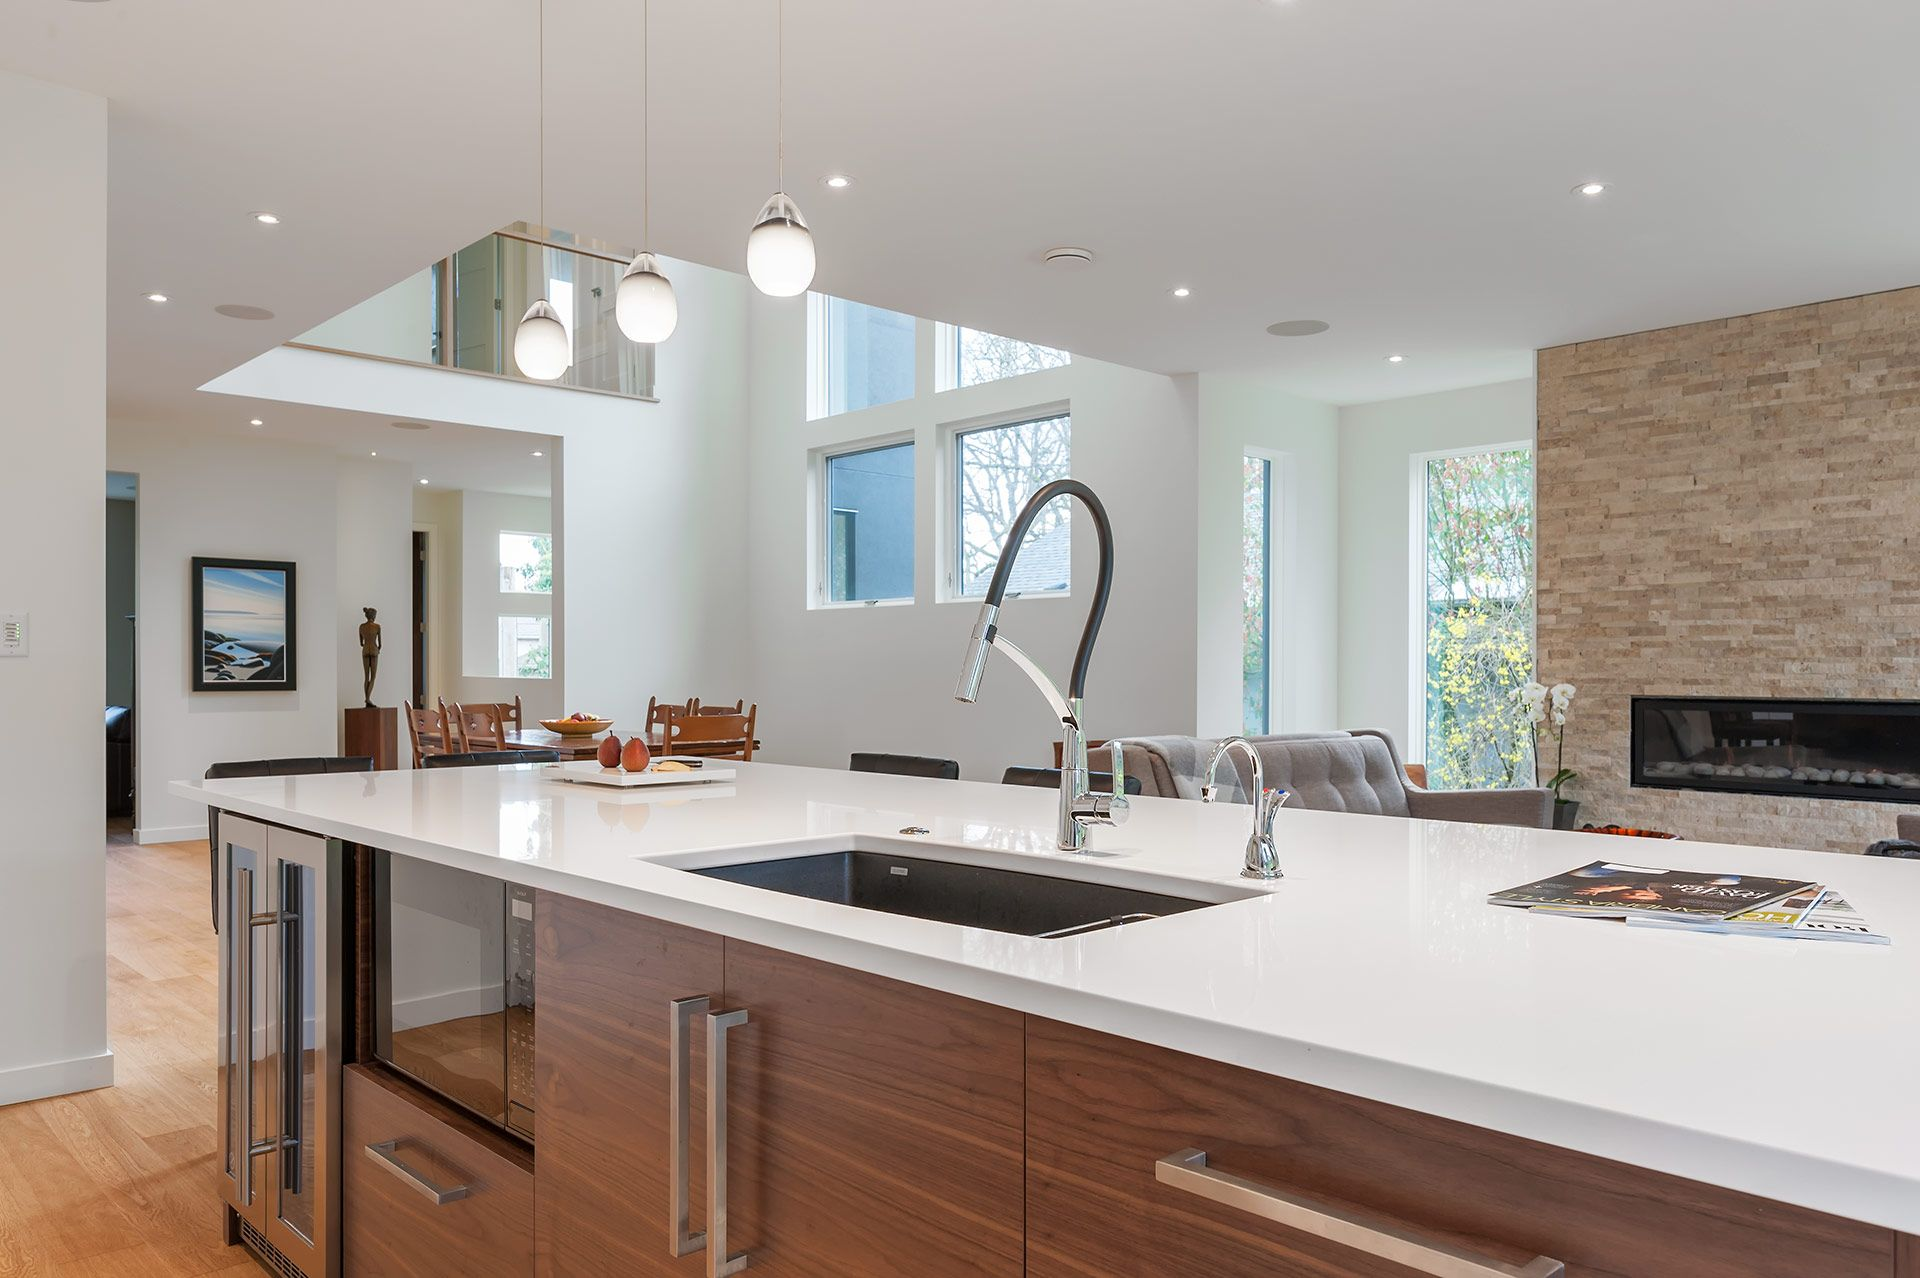 Learn about a Scandanavian-influenced kitchen design and millwork by ...